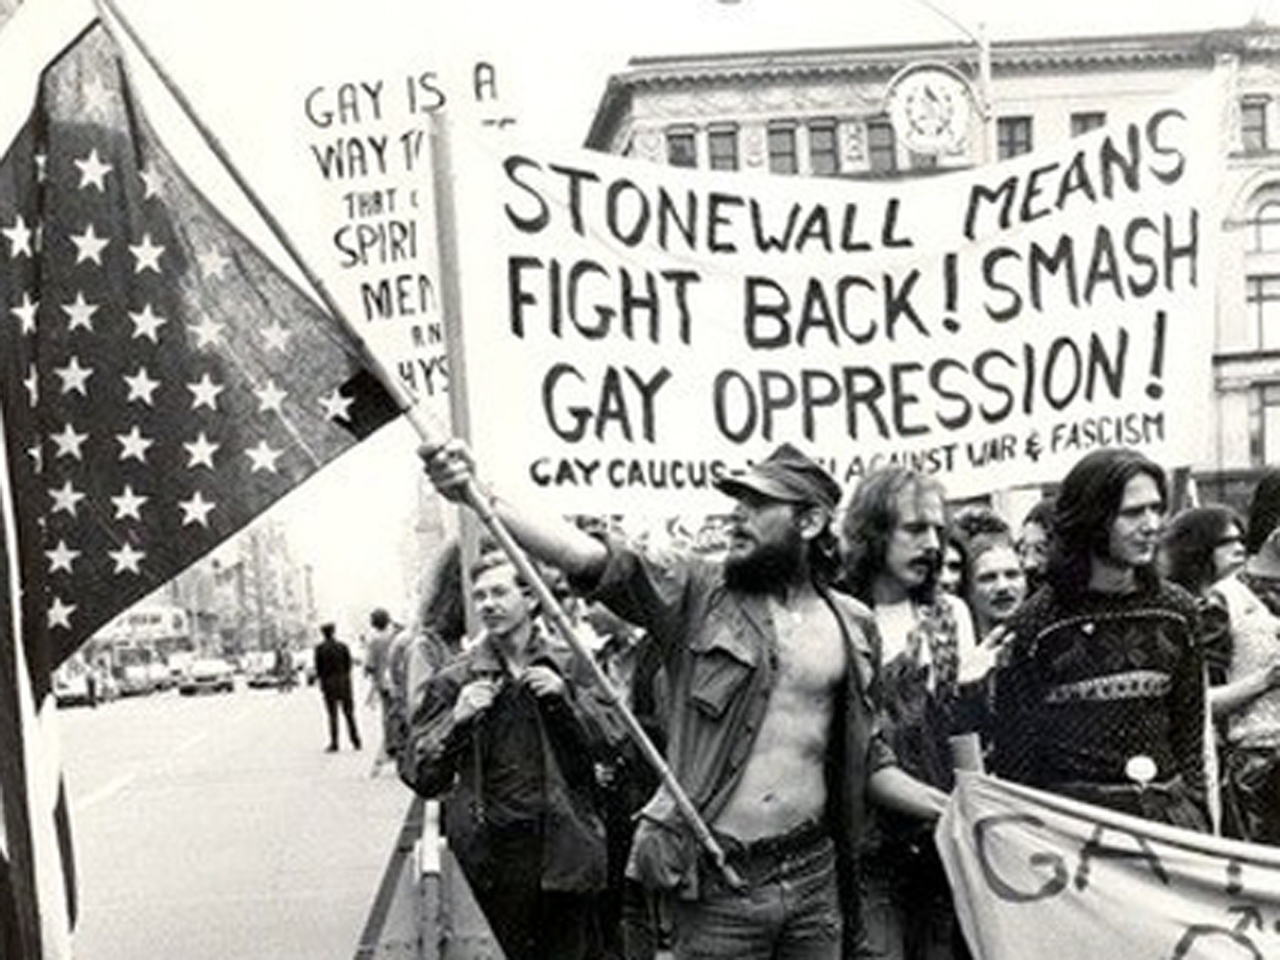 A Protest following the Stonewall Riots